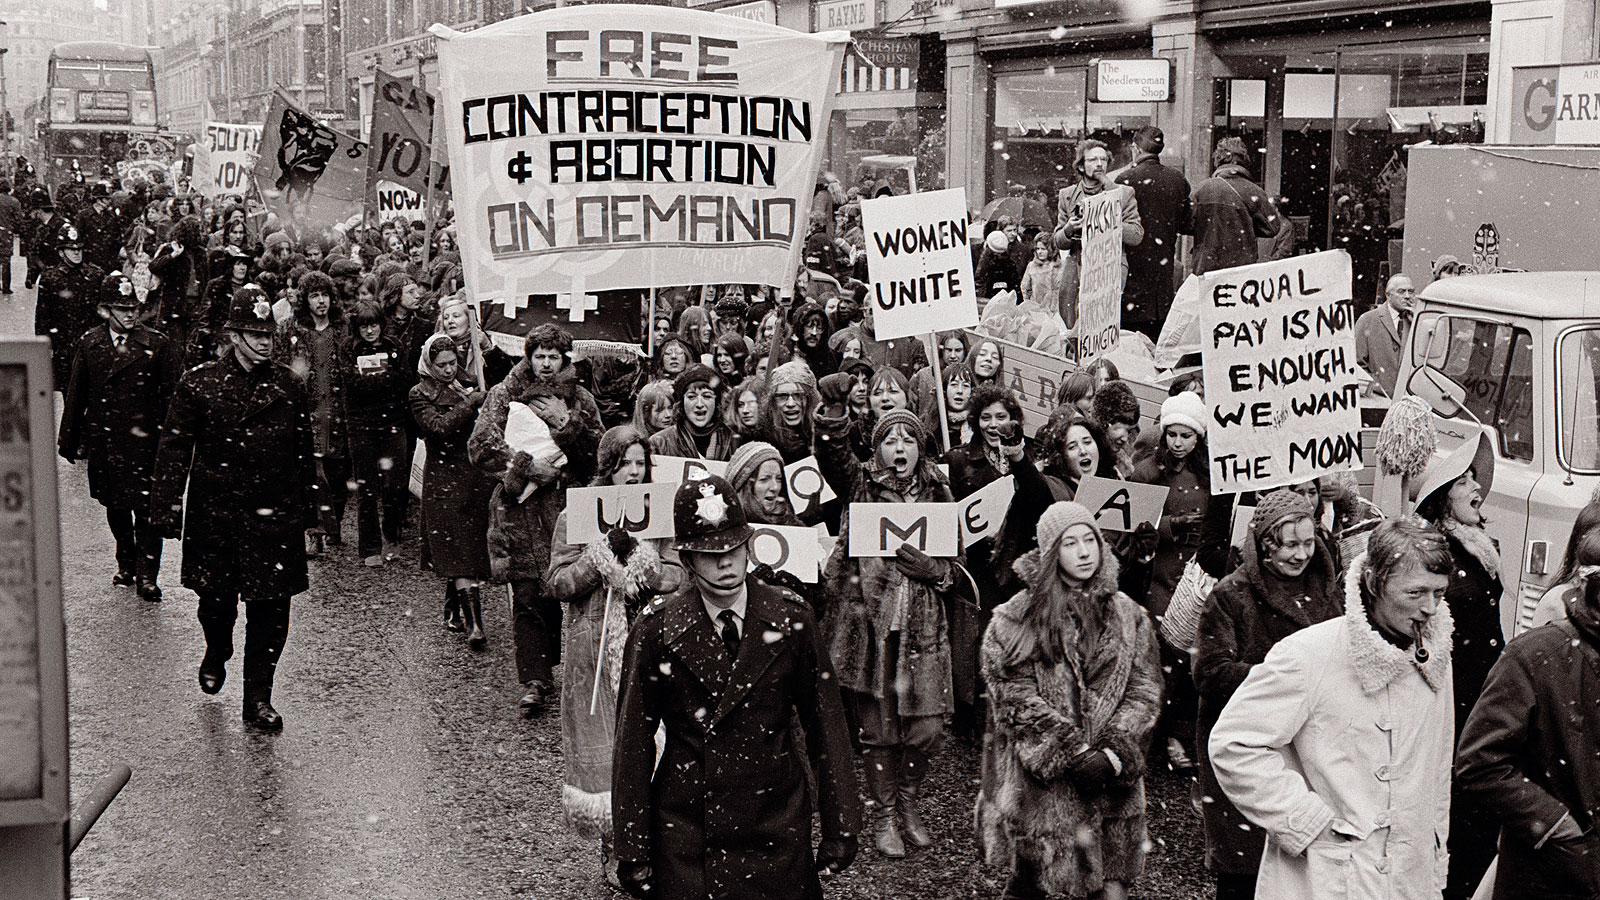 Campaigns, protests and the Women's Liberation Movement